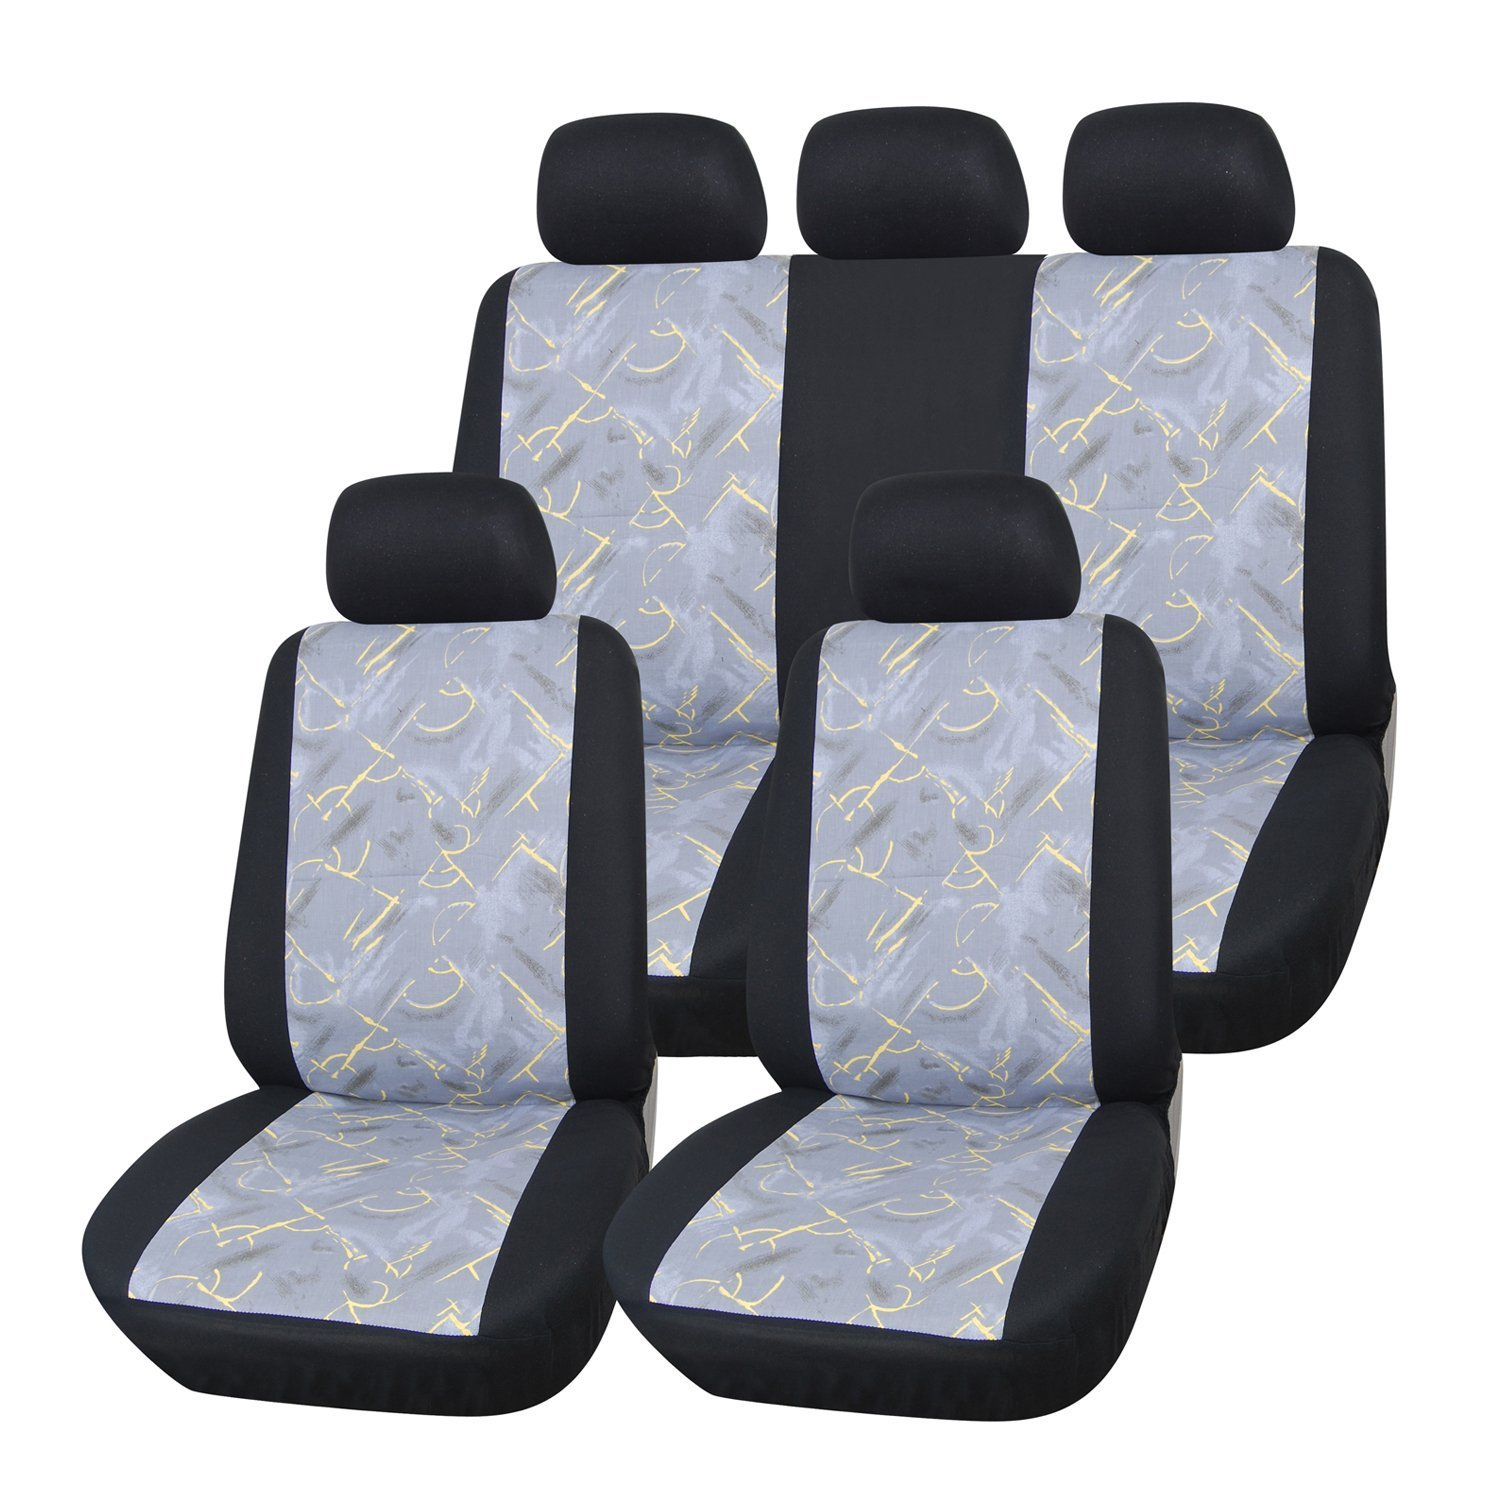 Adeco 2 Piece Car Vehicle Protective Seat Covers